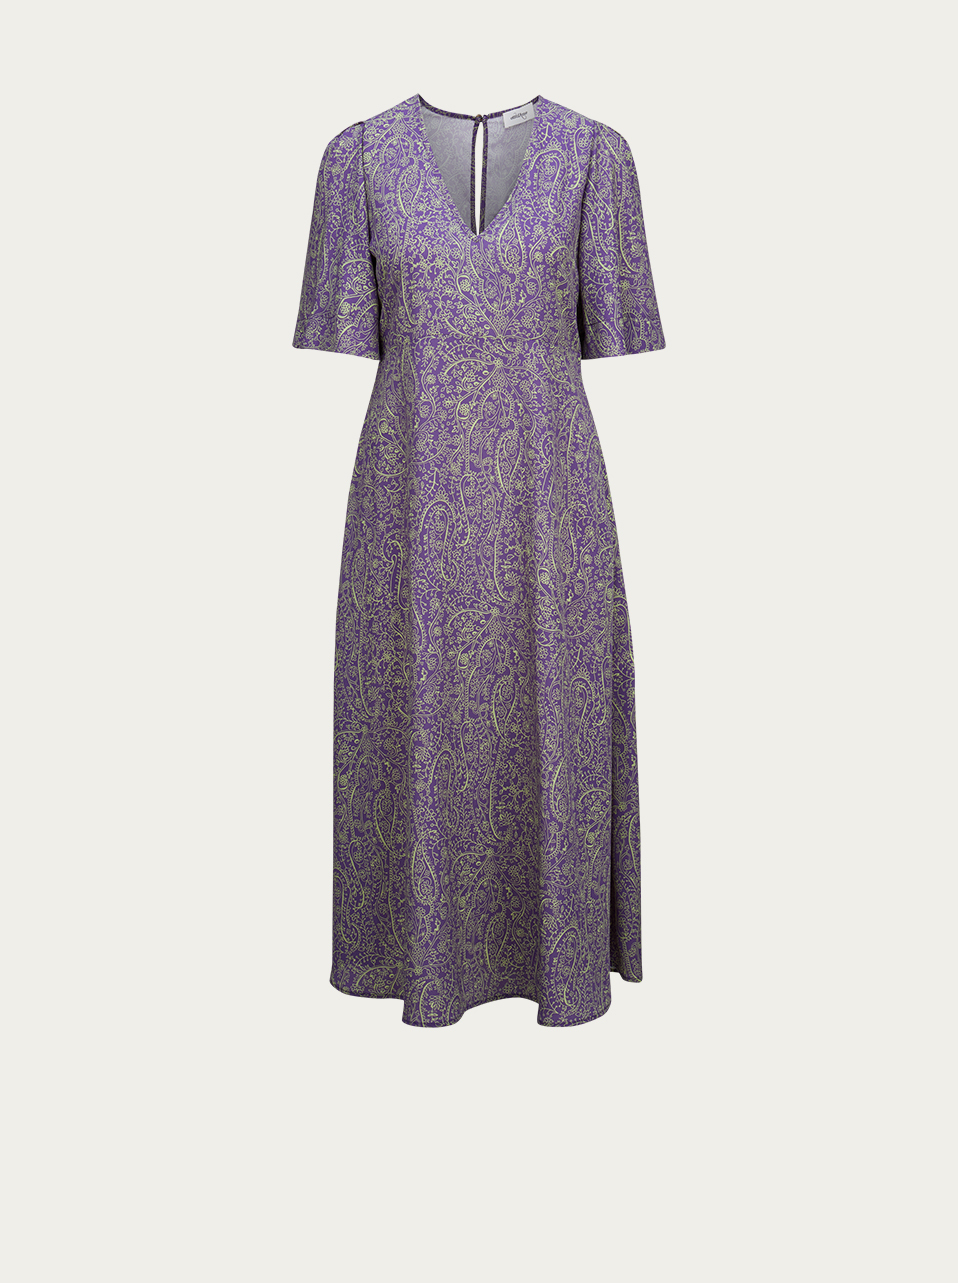 OTTOD' AME Kleid mit Paisley-Muster in Lila-Grün